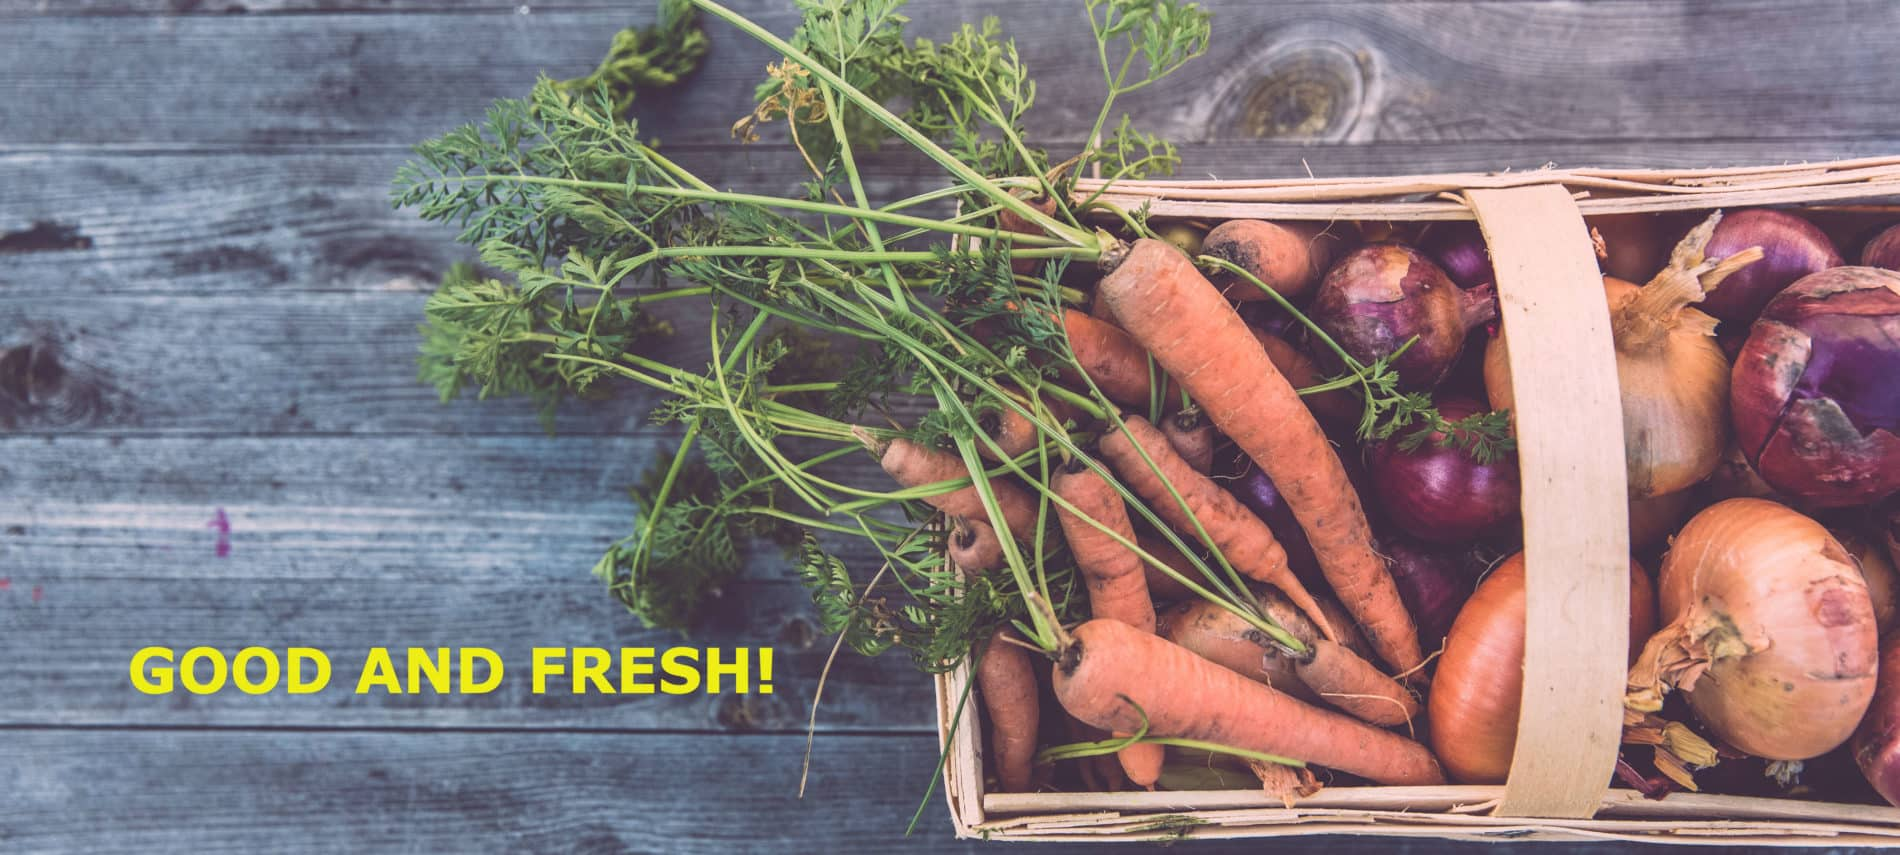 A rustic basket filled with fresh garden carrots.